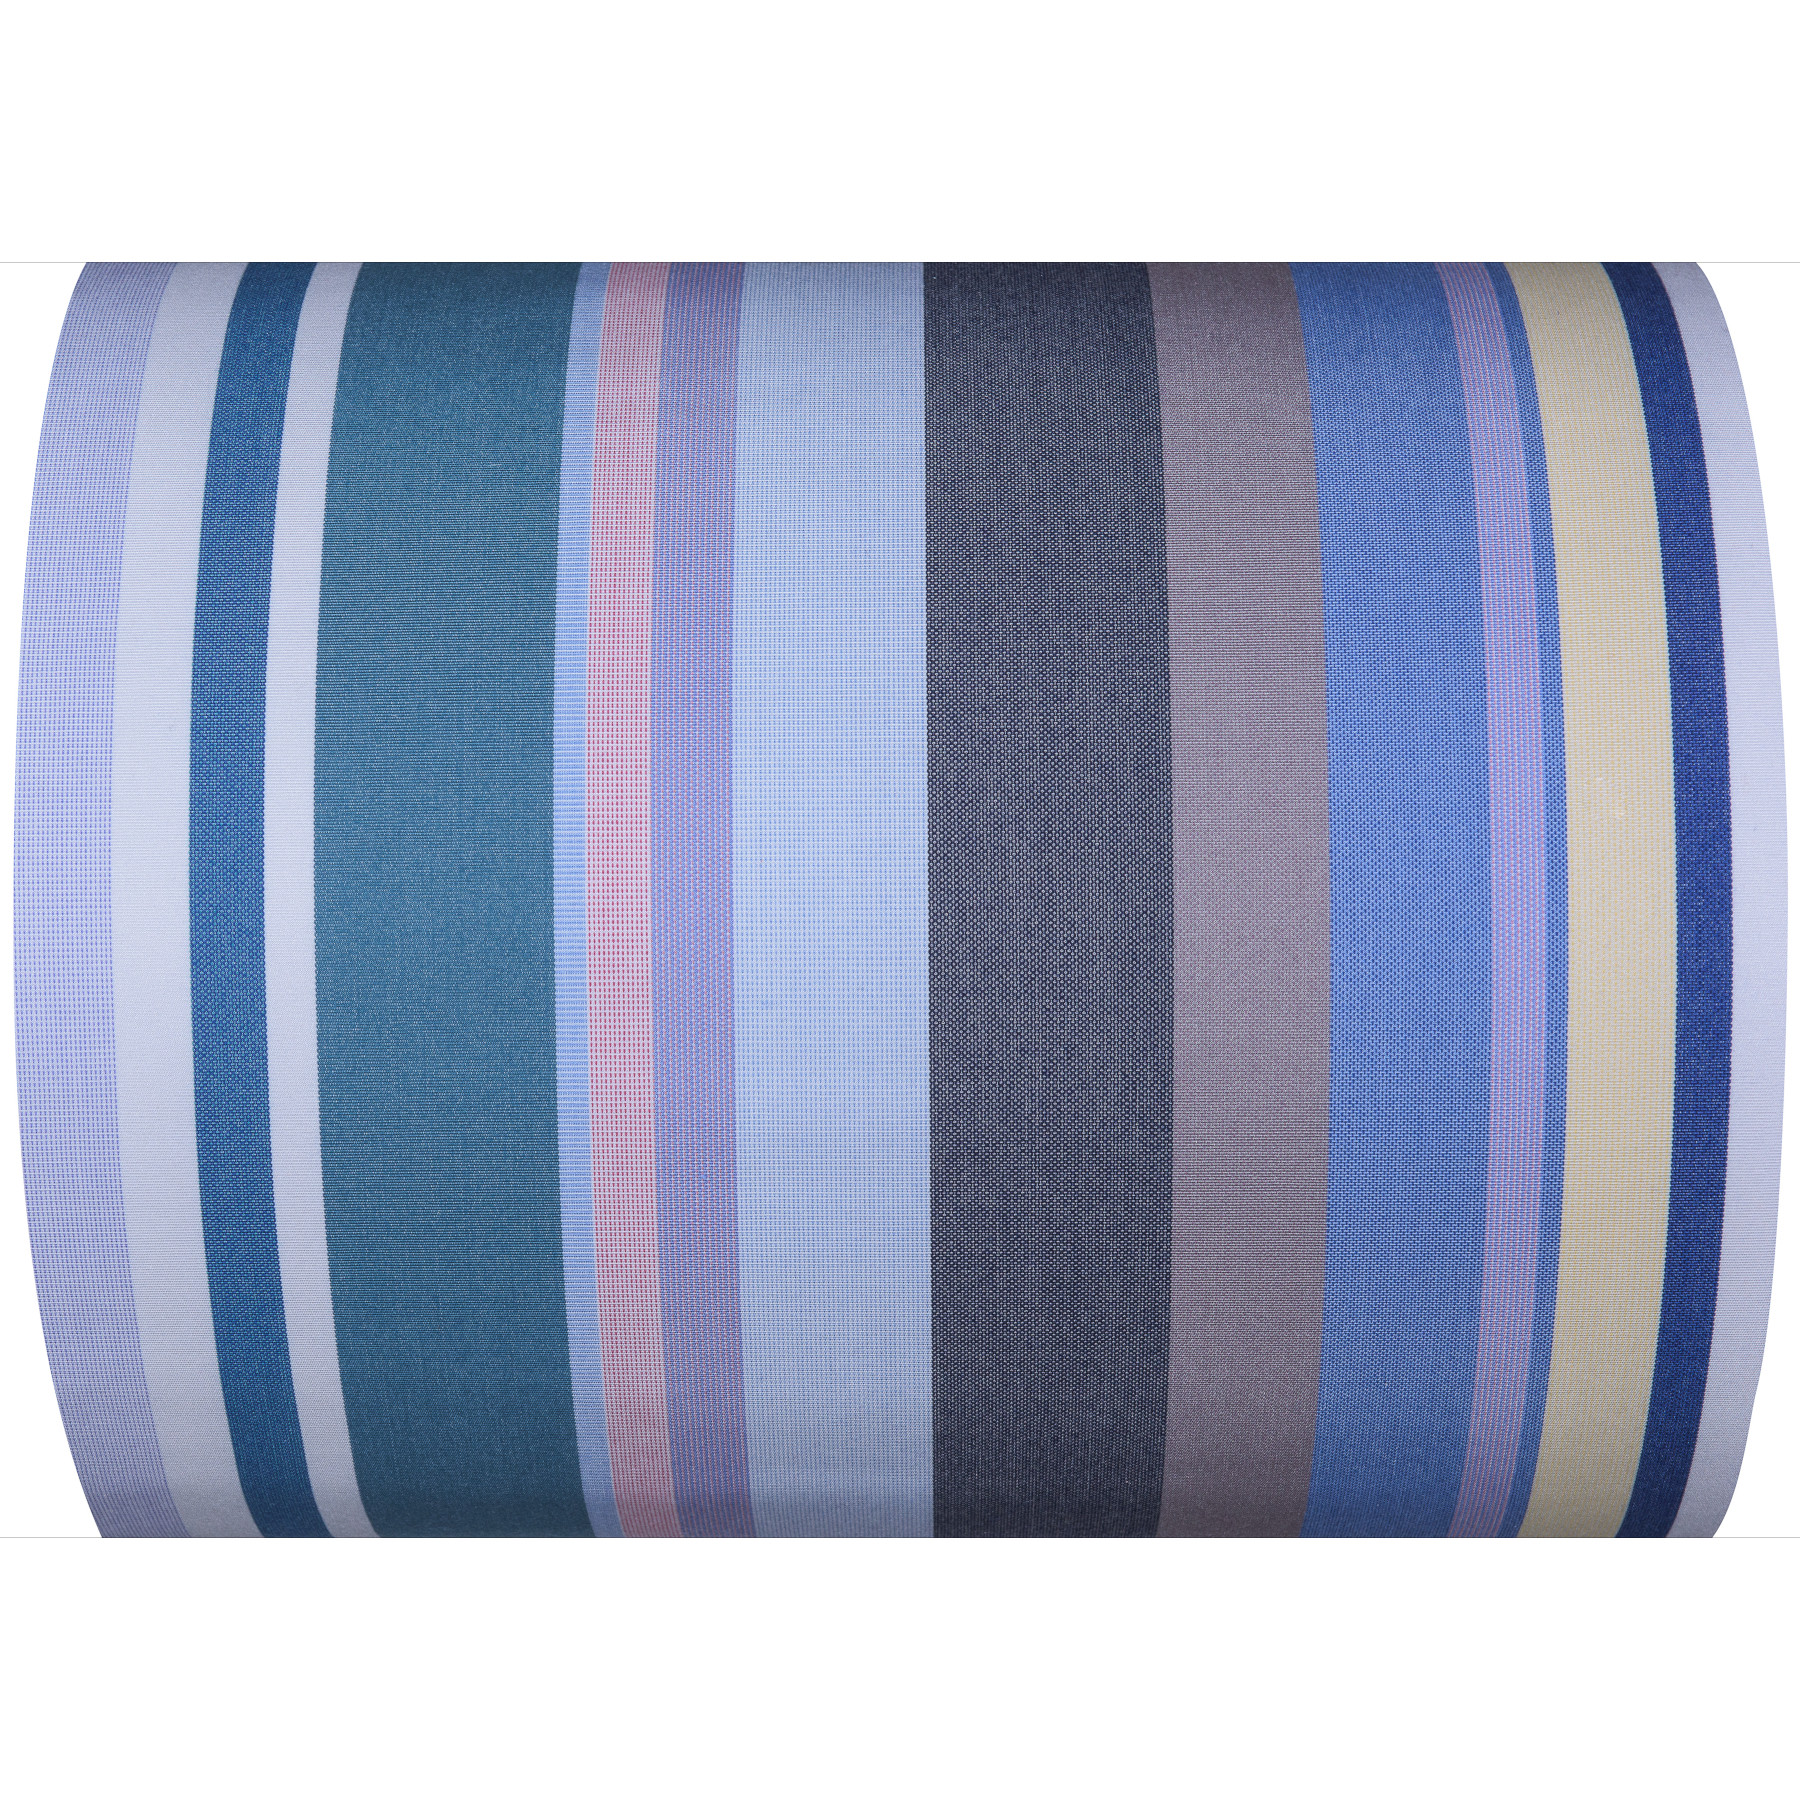 Fabric by the meter L'HEURE BLEUE SUNBRELLA 43cm